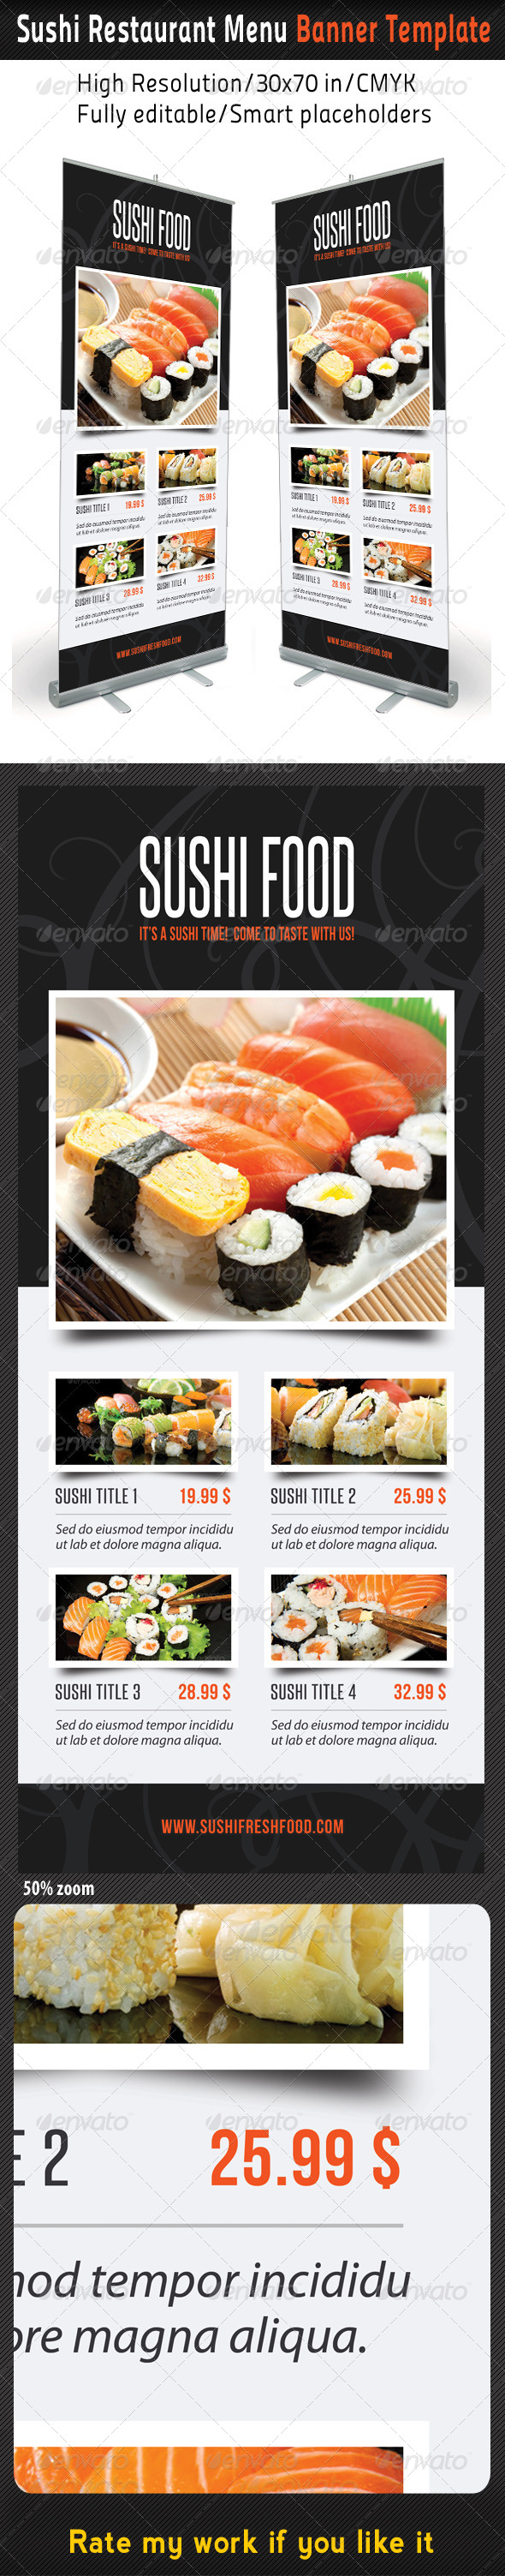 GraphicRiver Sushi Restaurant Menu Banner Template 8366612